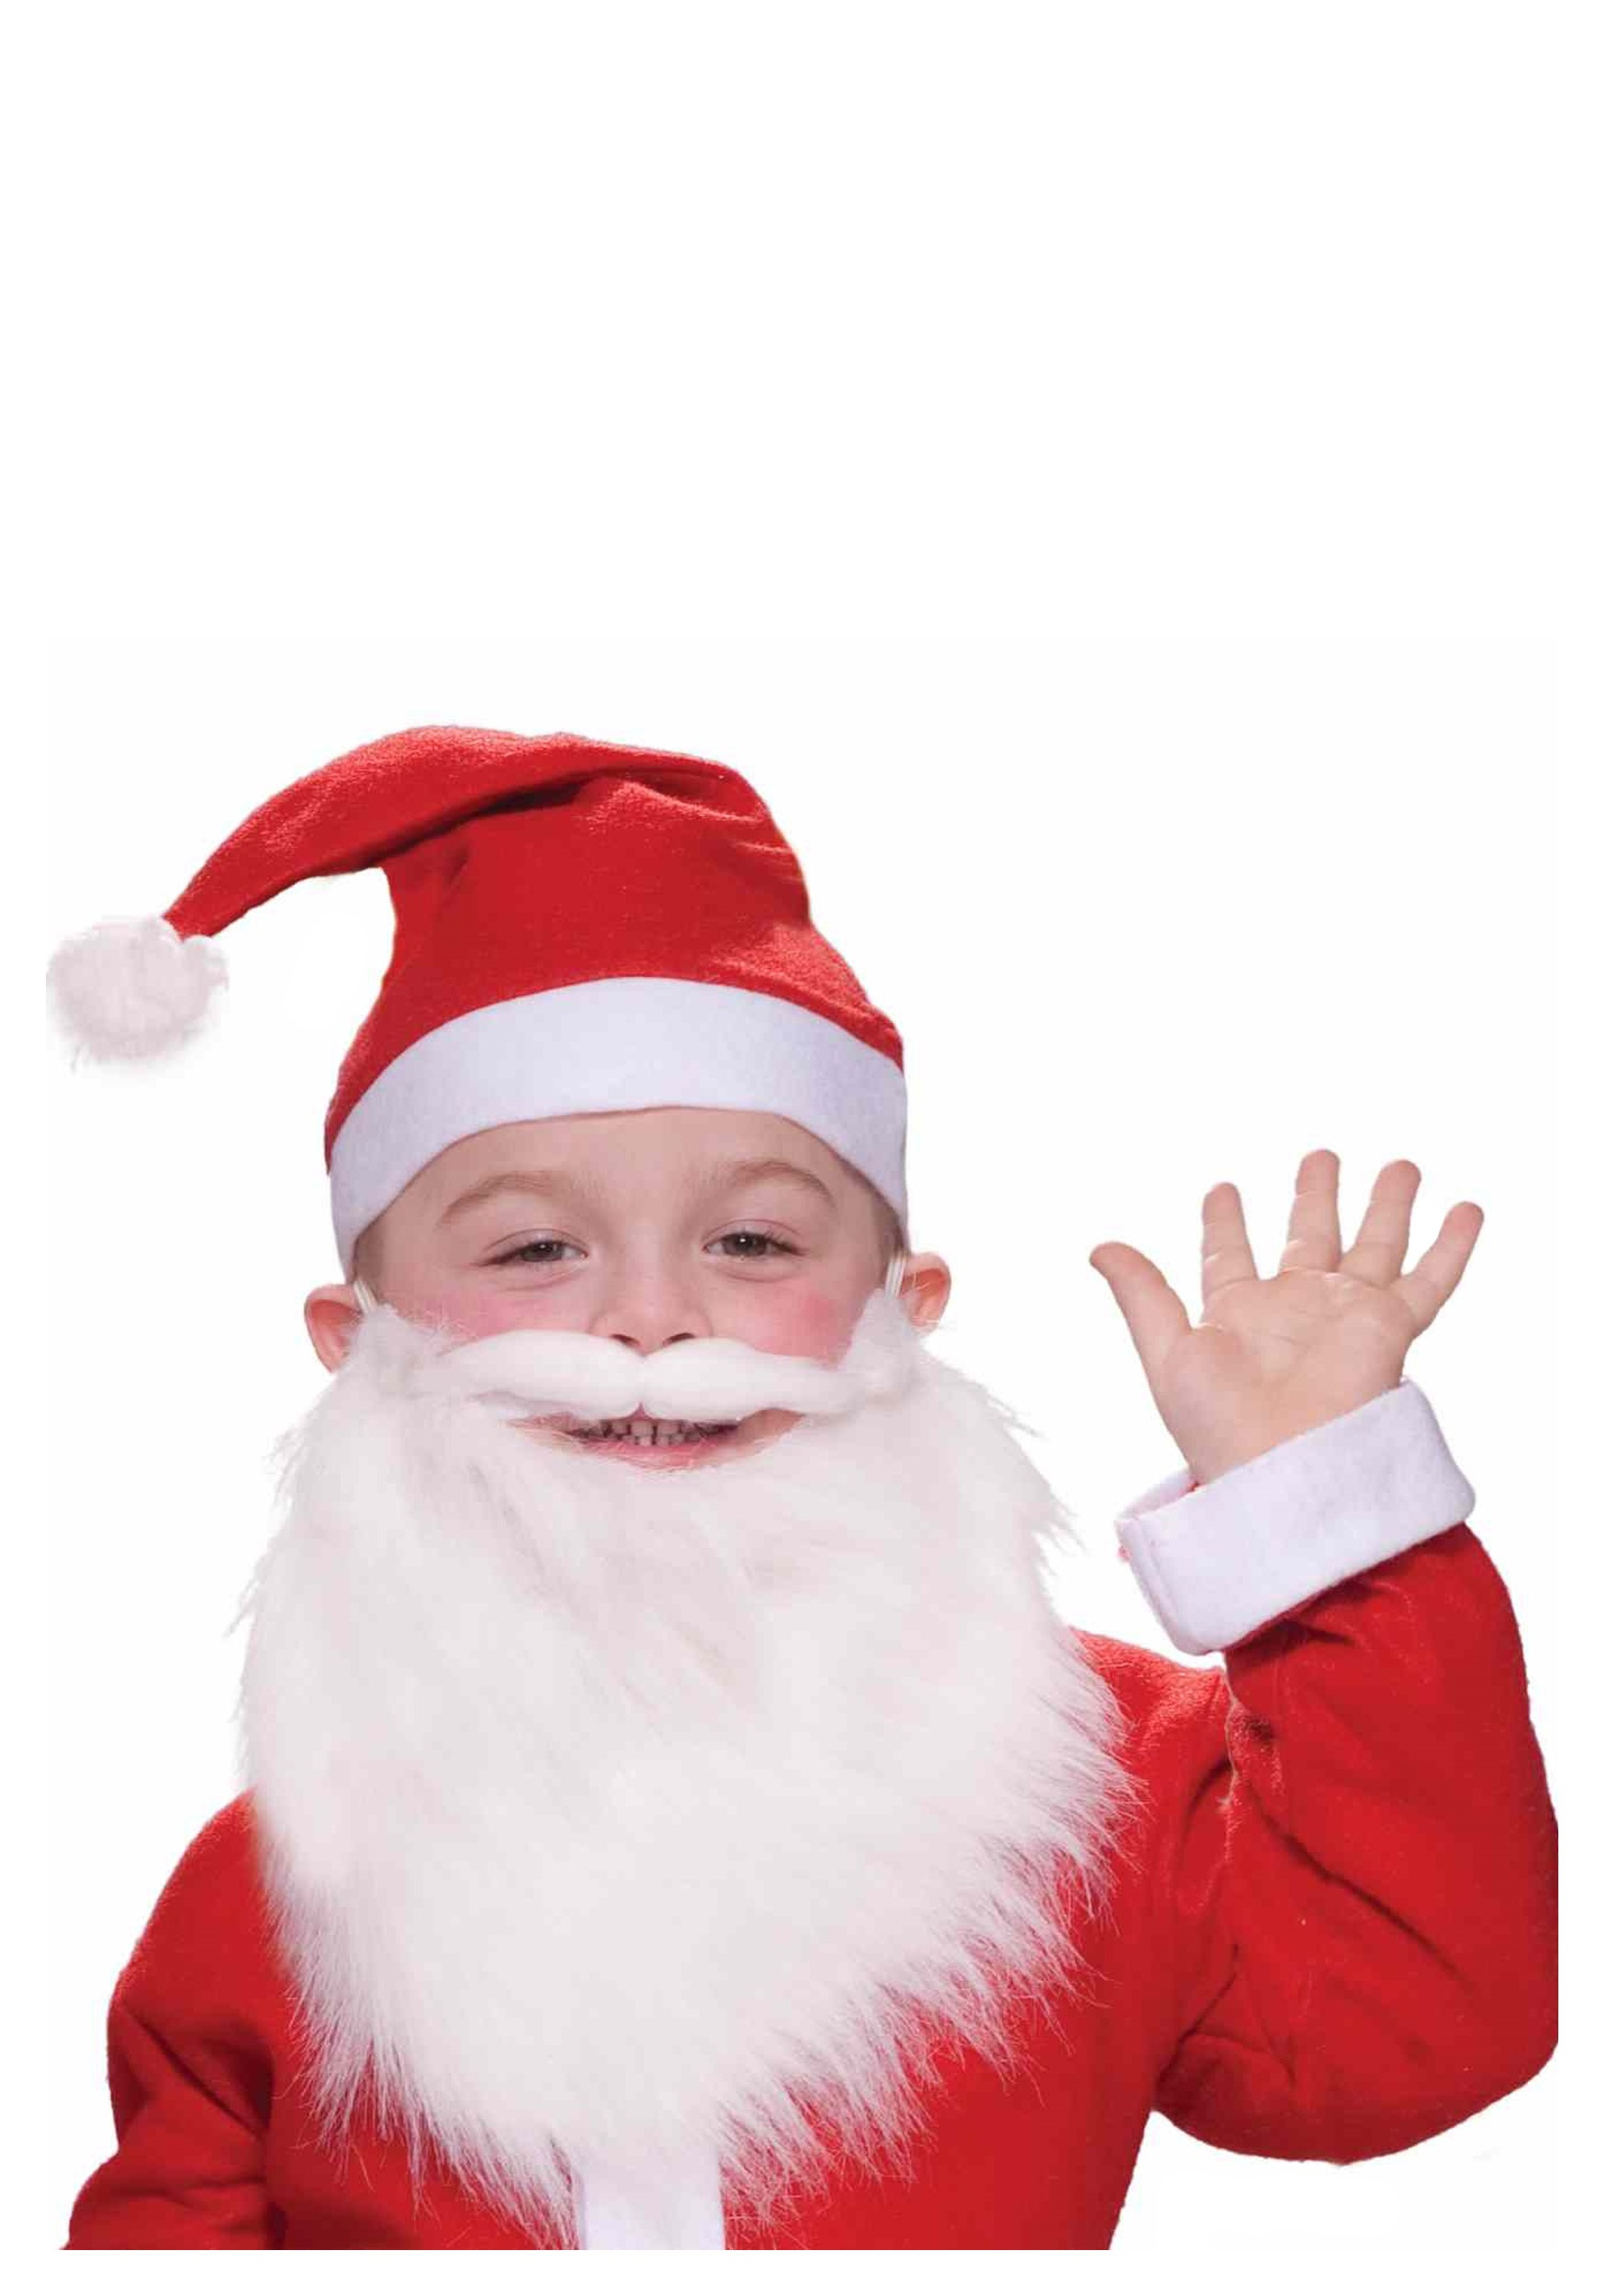 9496c0de090d1 child-santa-beard-and-moustache.jpg